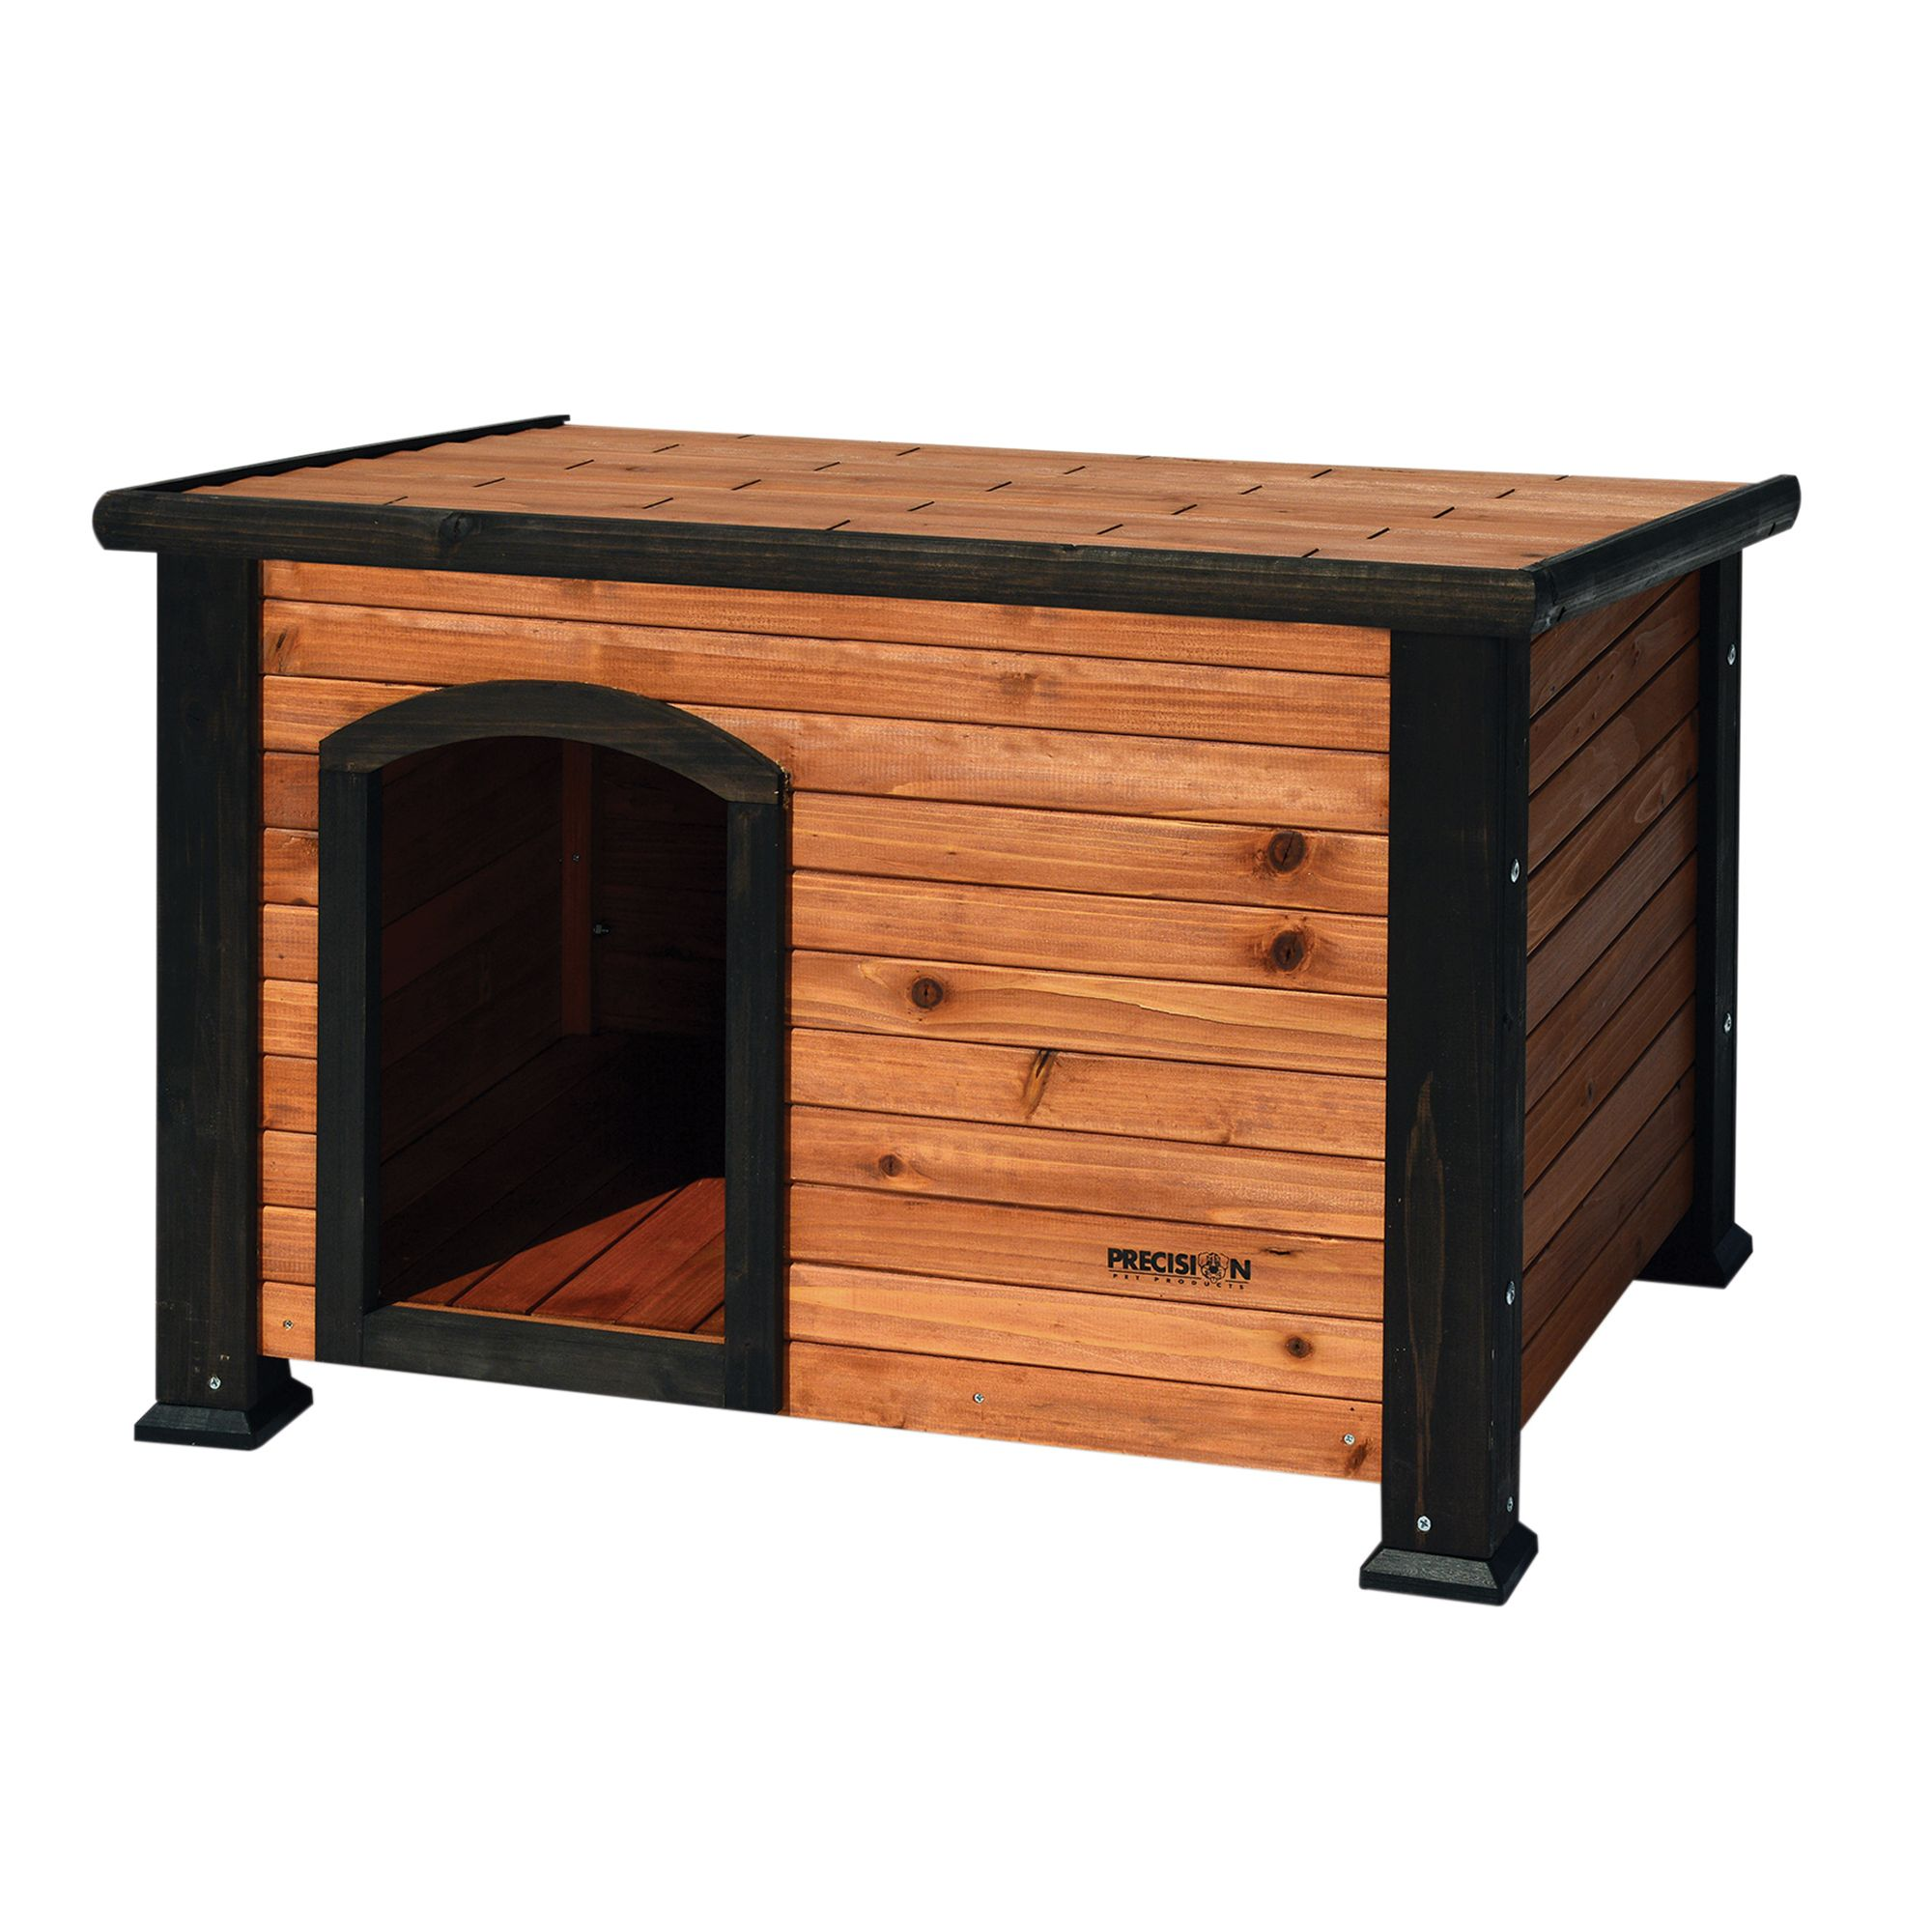 "Precision Pet Outback Log Cabin Dog House size: 33.5""L x 24.5""W x 22""H, Brown 5095722"